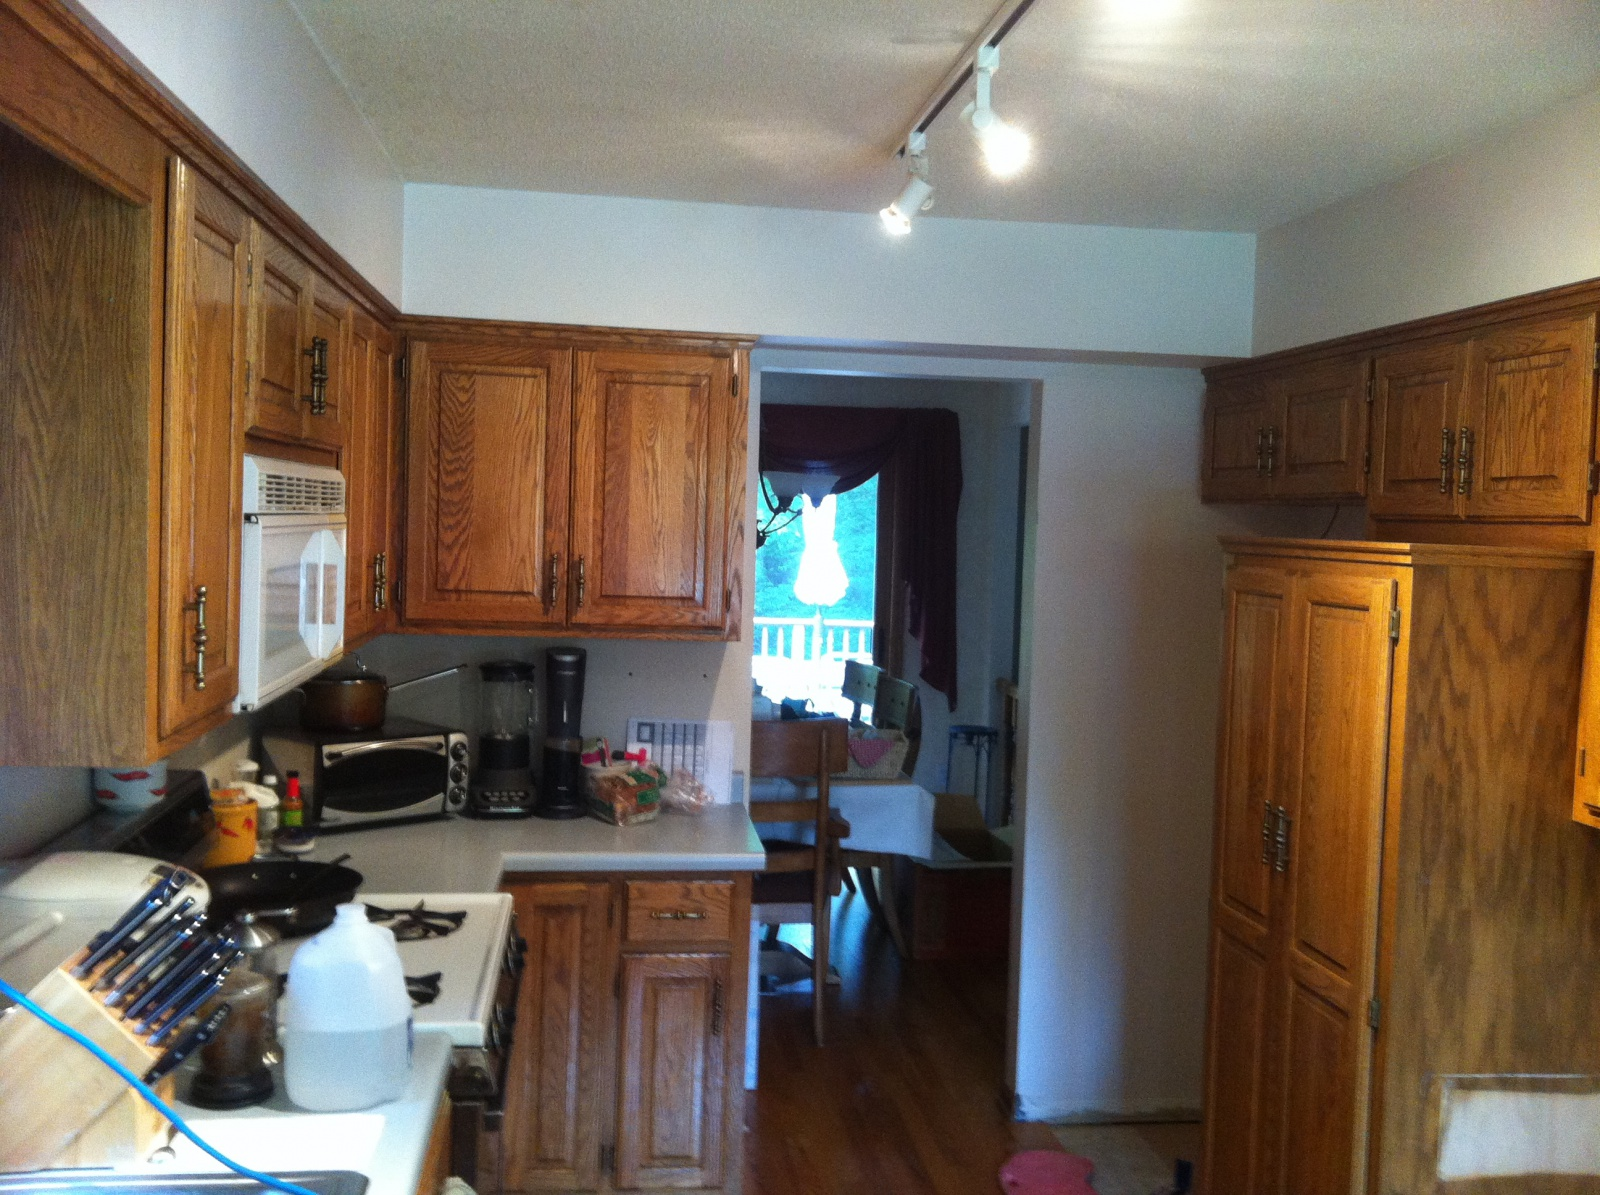 Eagan Kitchen Remodel: BEFORE